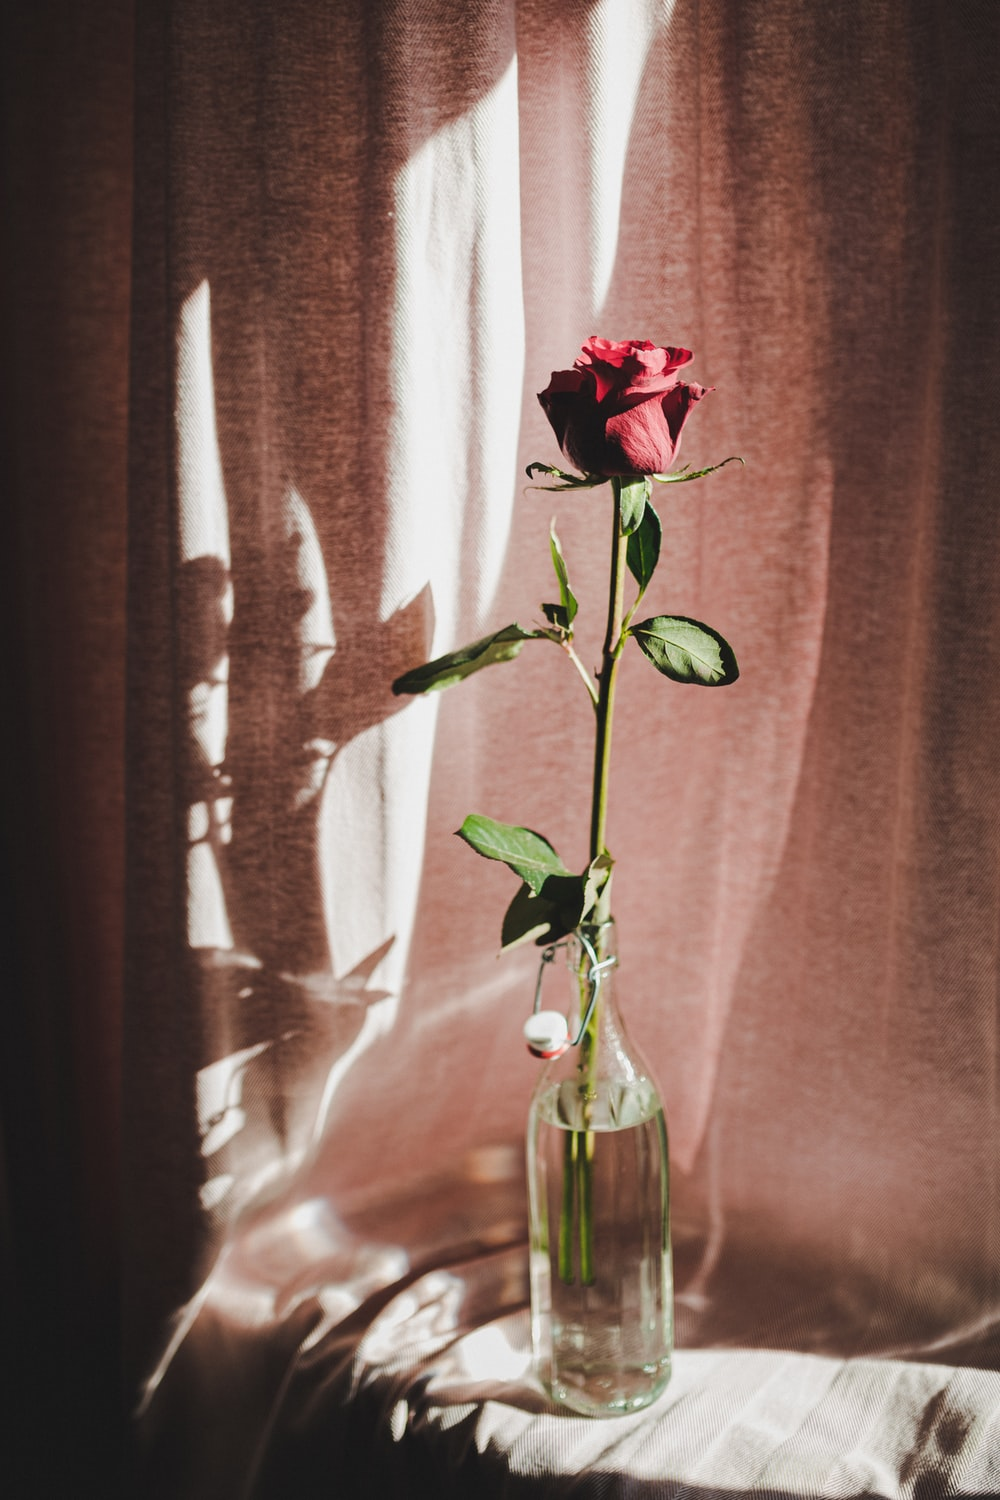 red rose in clear glass vase